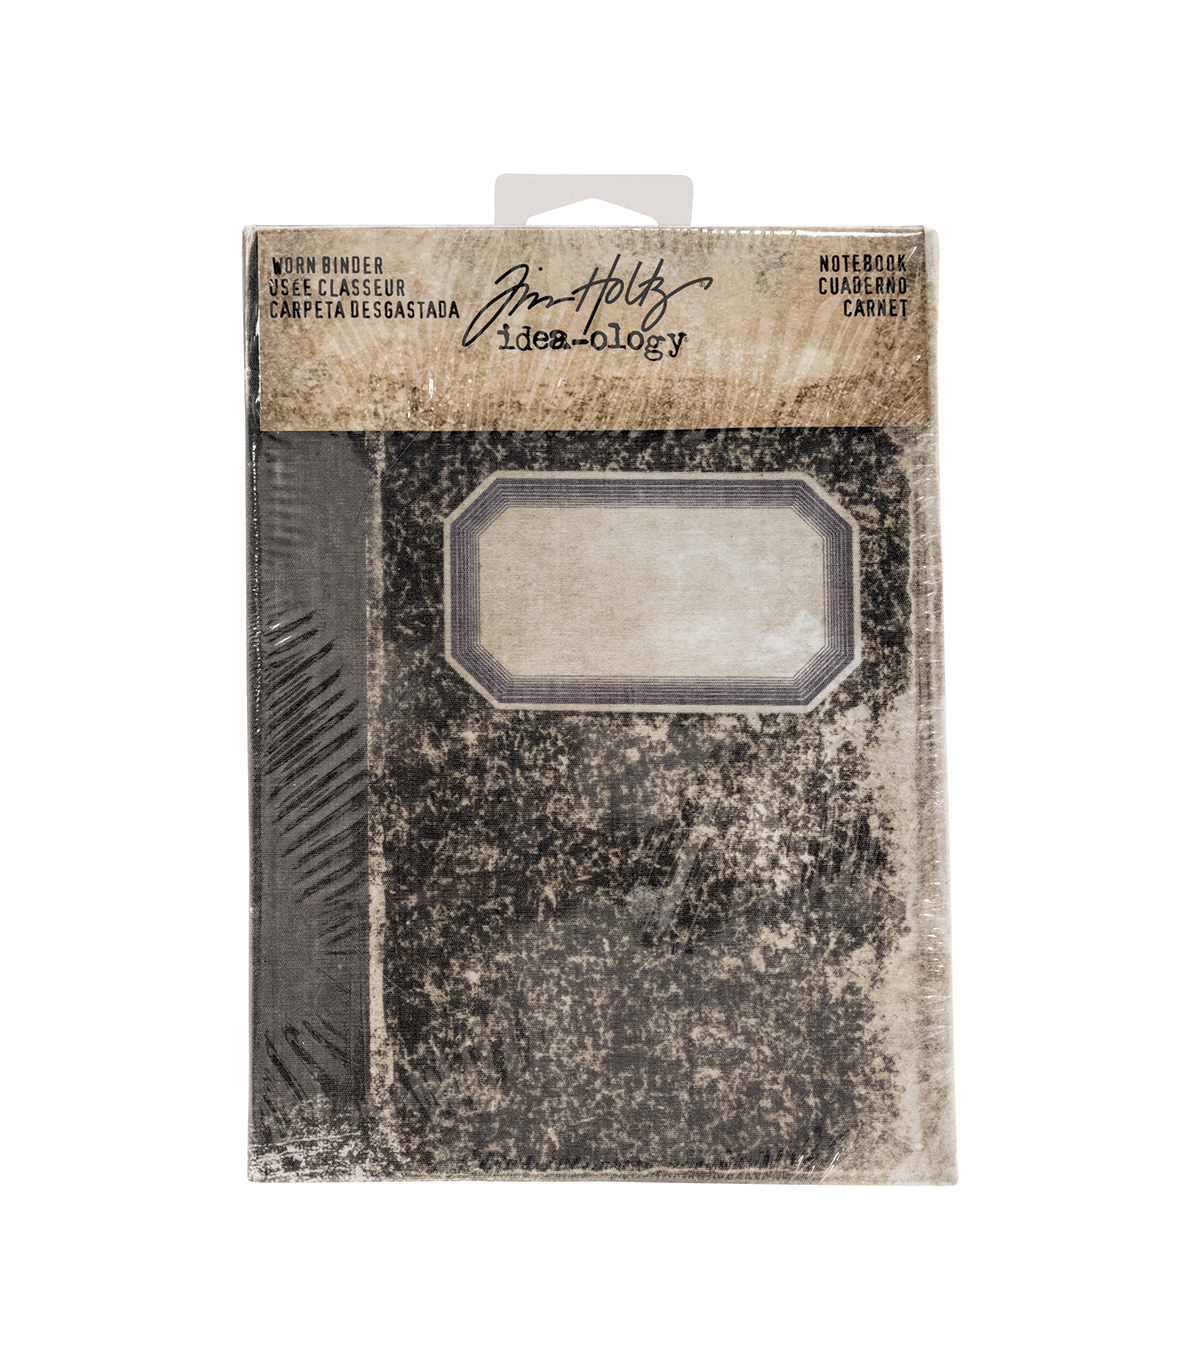 Tim Holtz Idea-ology Notebook Worn Binder